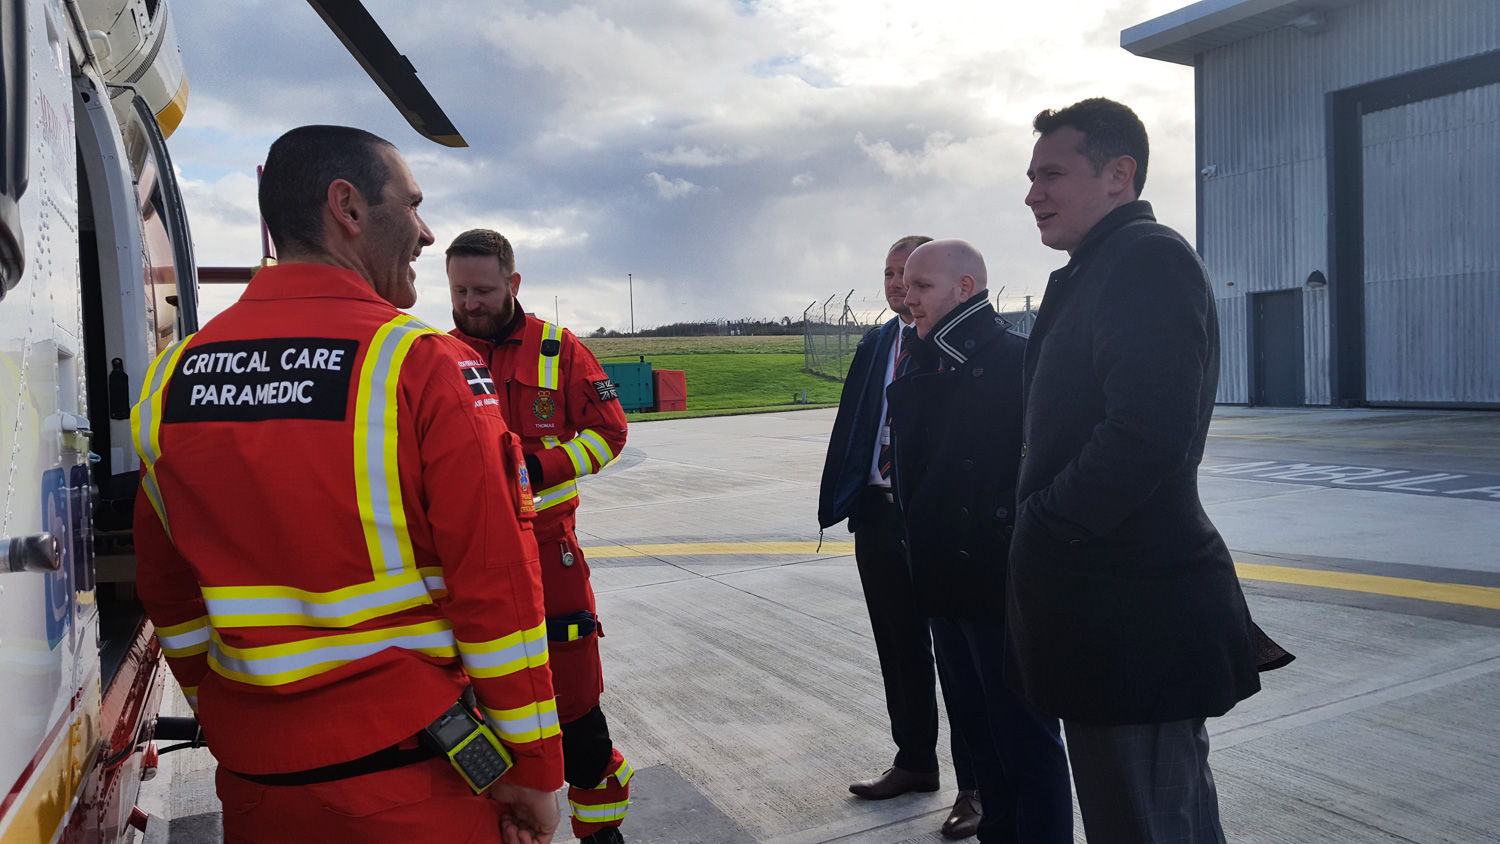 Cornwall Air Ambulance crew with Kivells staff learning about the amazing work they do